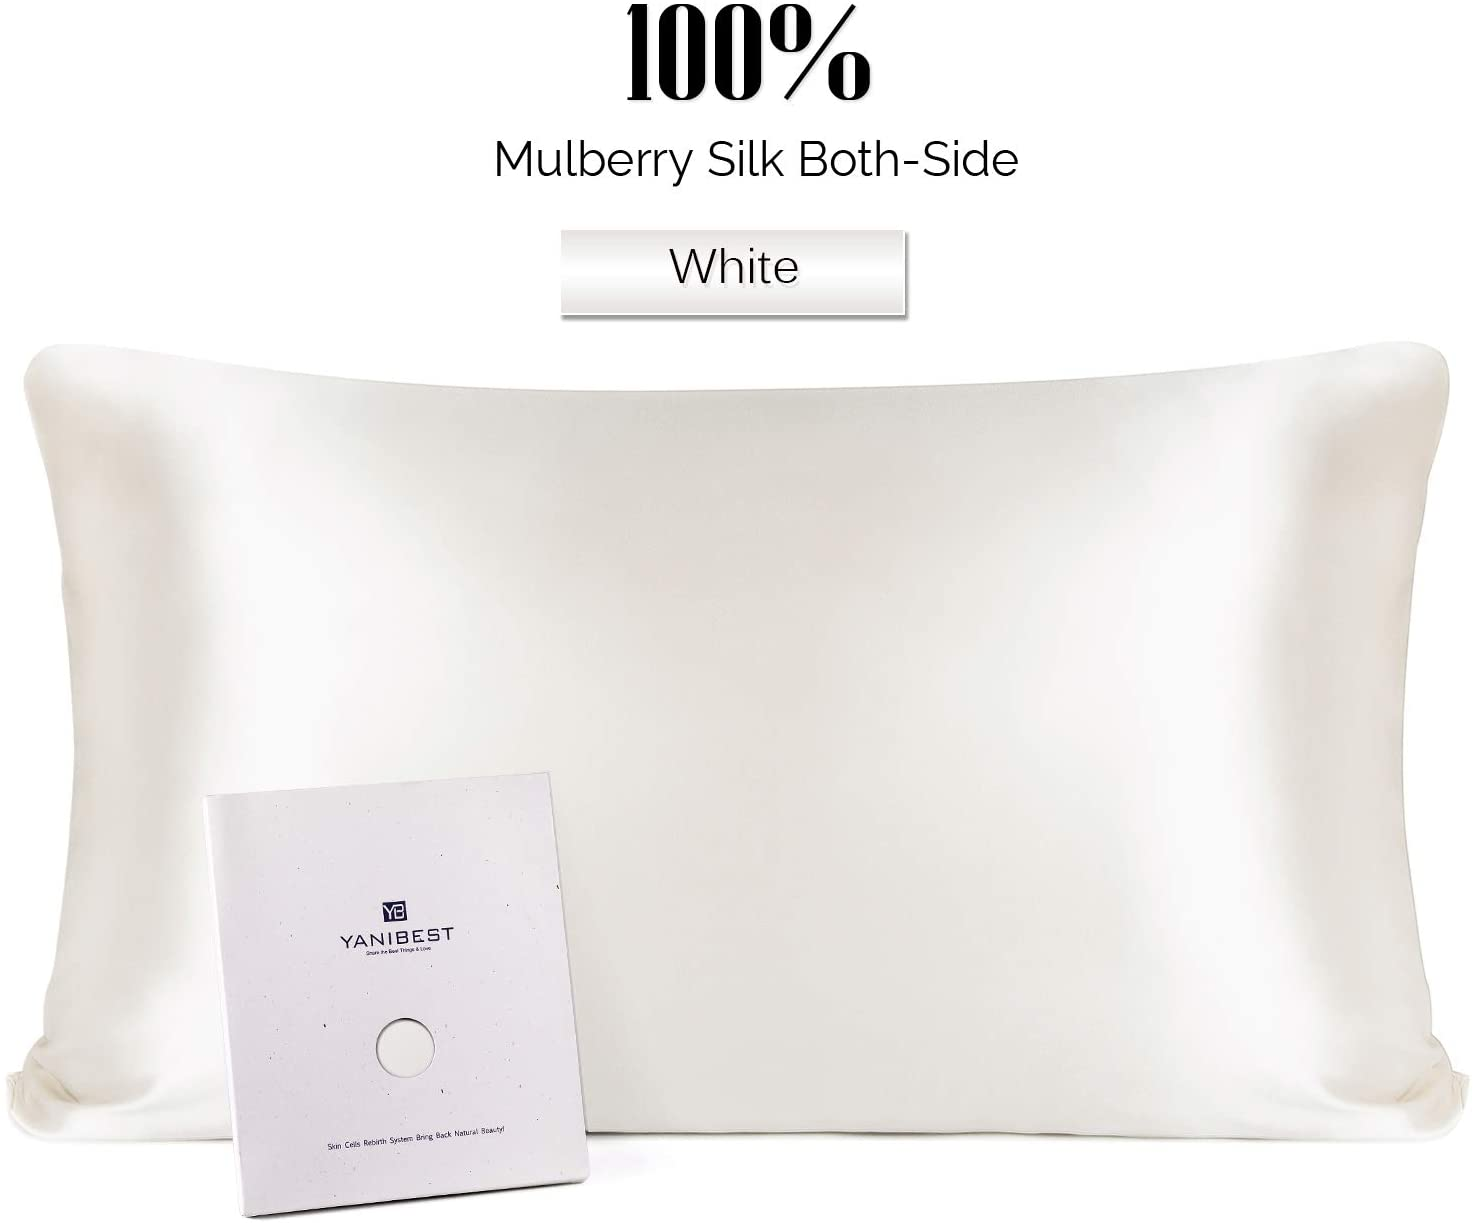 YANIBEST Silk Pillowcase for Hair and Skin - 21 Momme 600 Thread Count 100% Mulberry Silk Bed Pillowcase with Hidden Zipper, 1 Pack Standard Size Pillow Case White